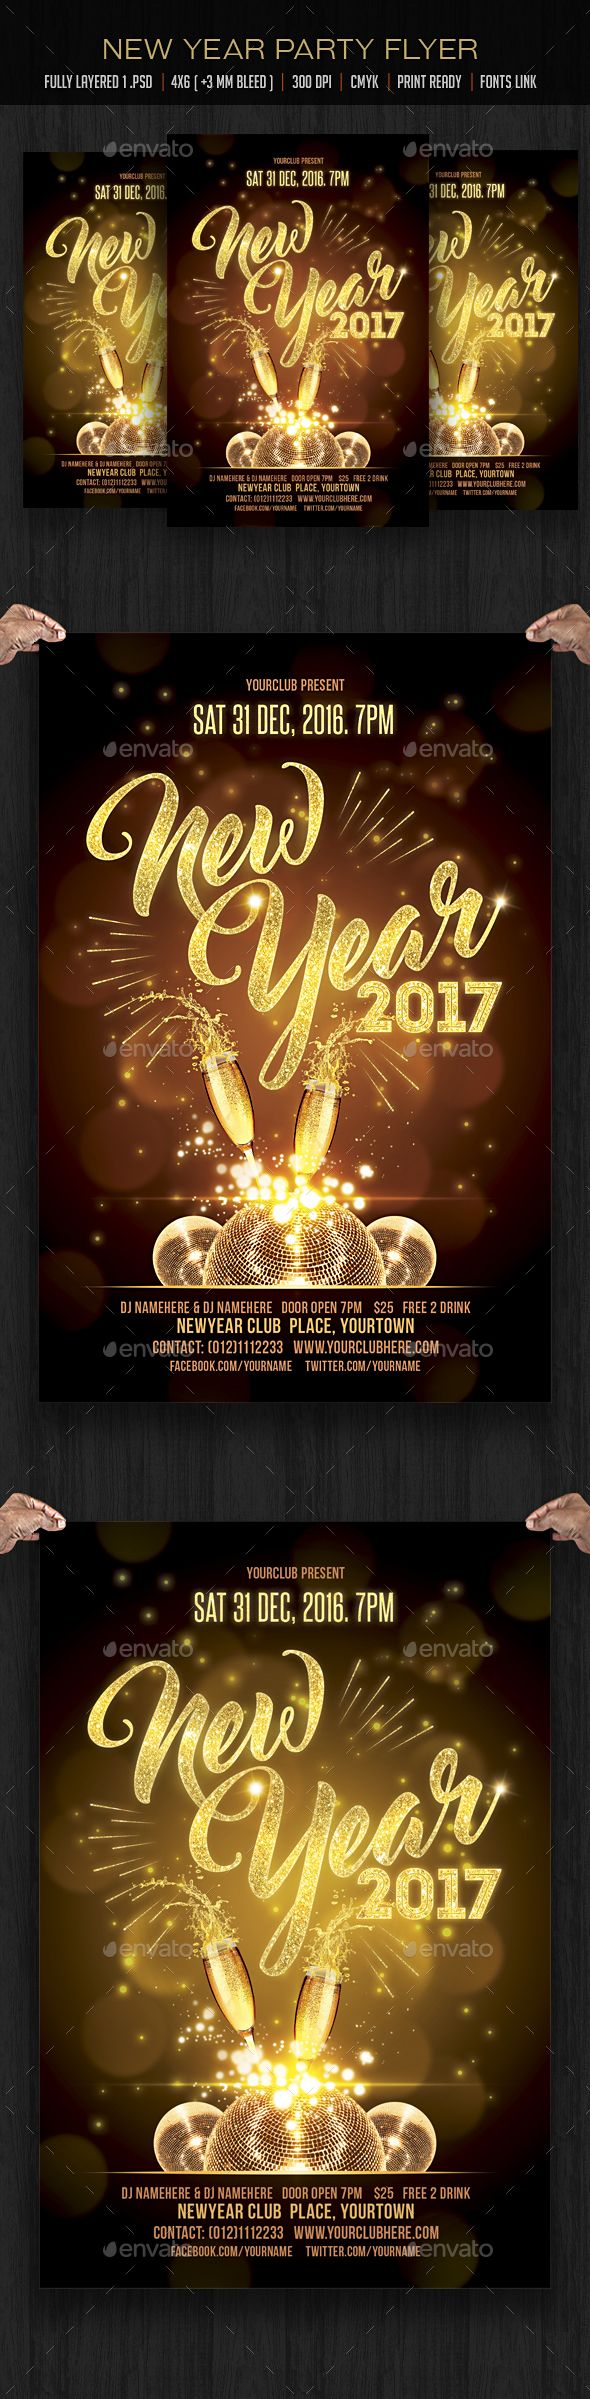 New Year Party Flyer Design Template  Clubs  Parties Events